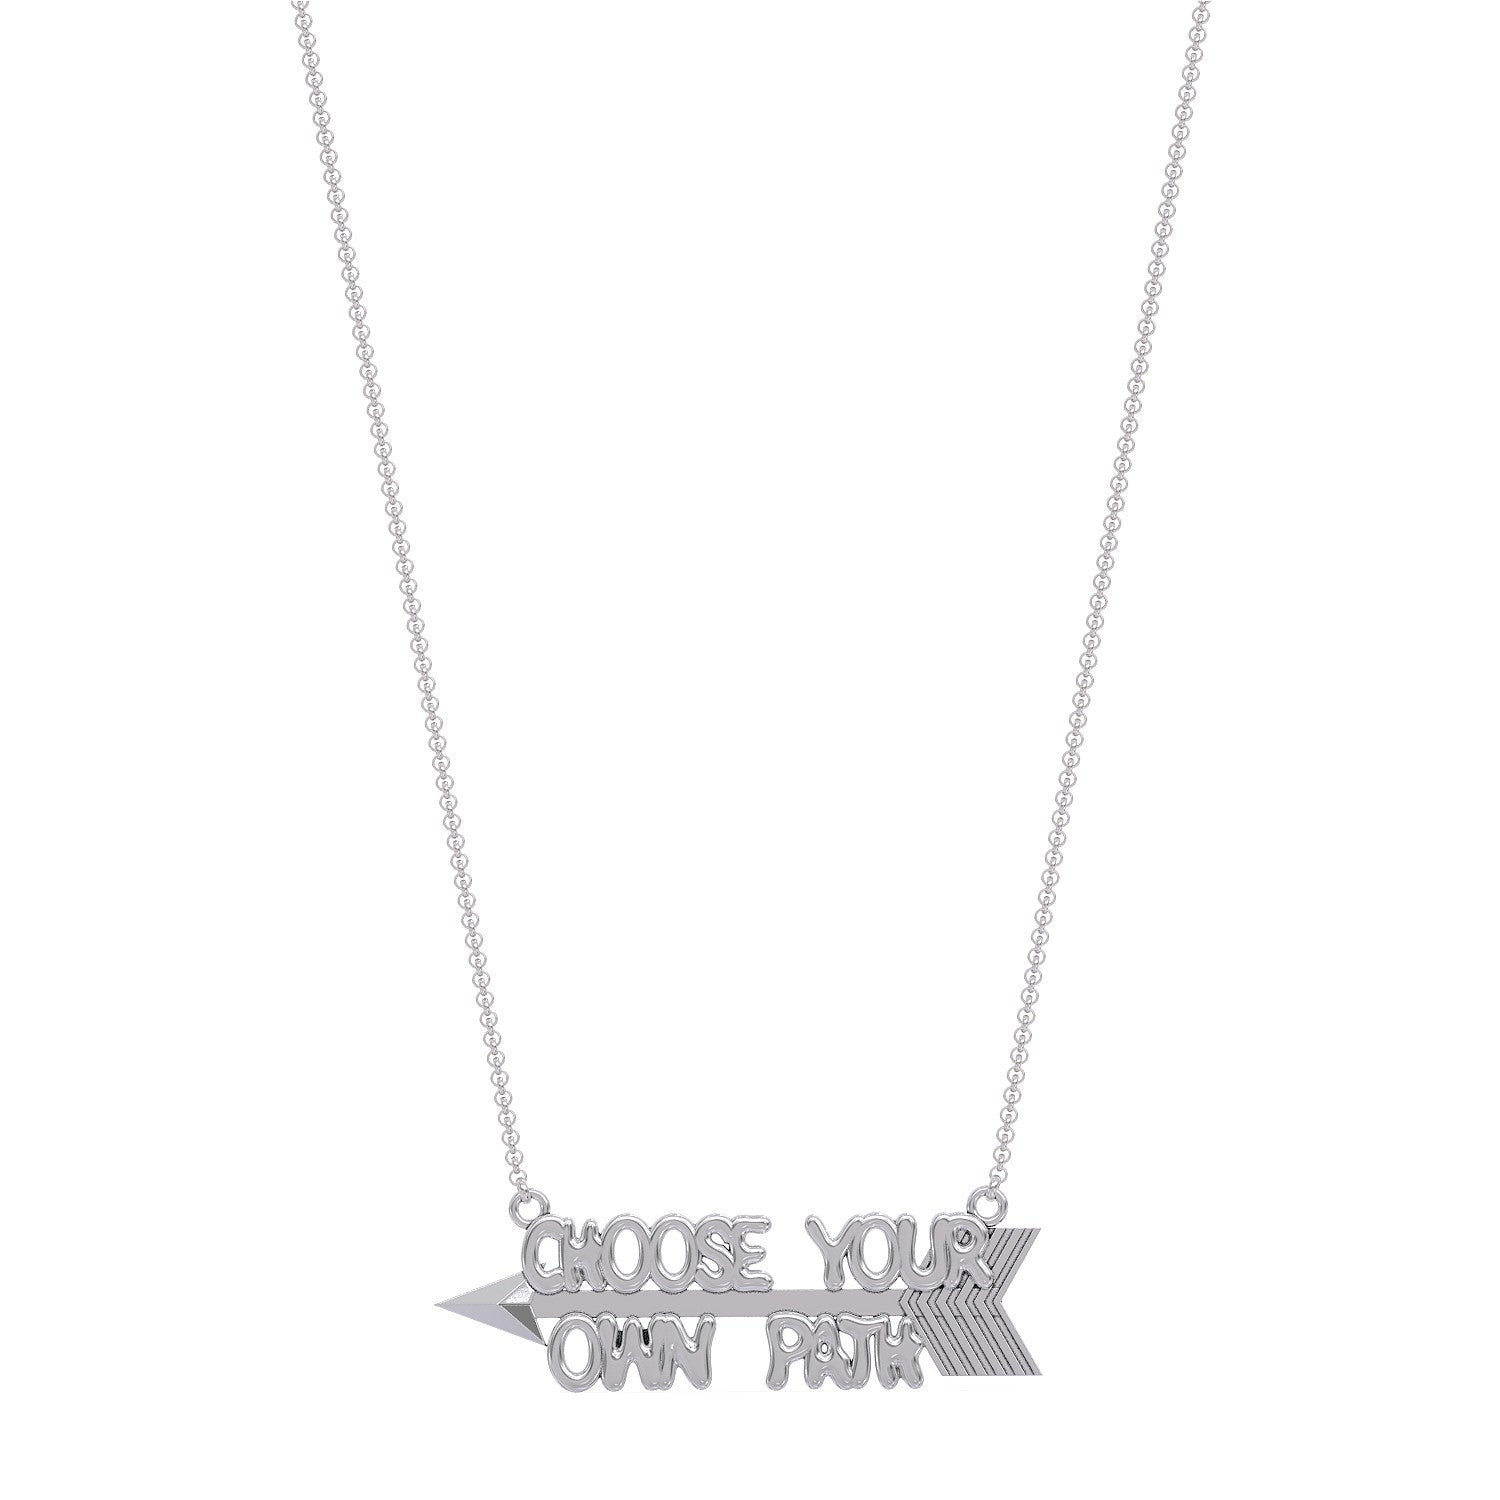 Choose Your Own Path Necklace